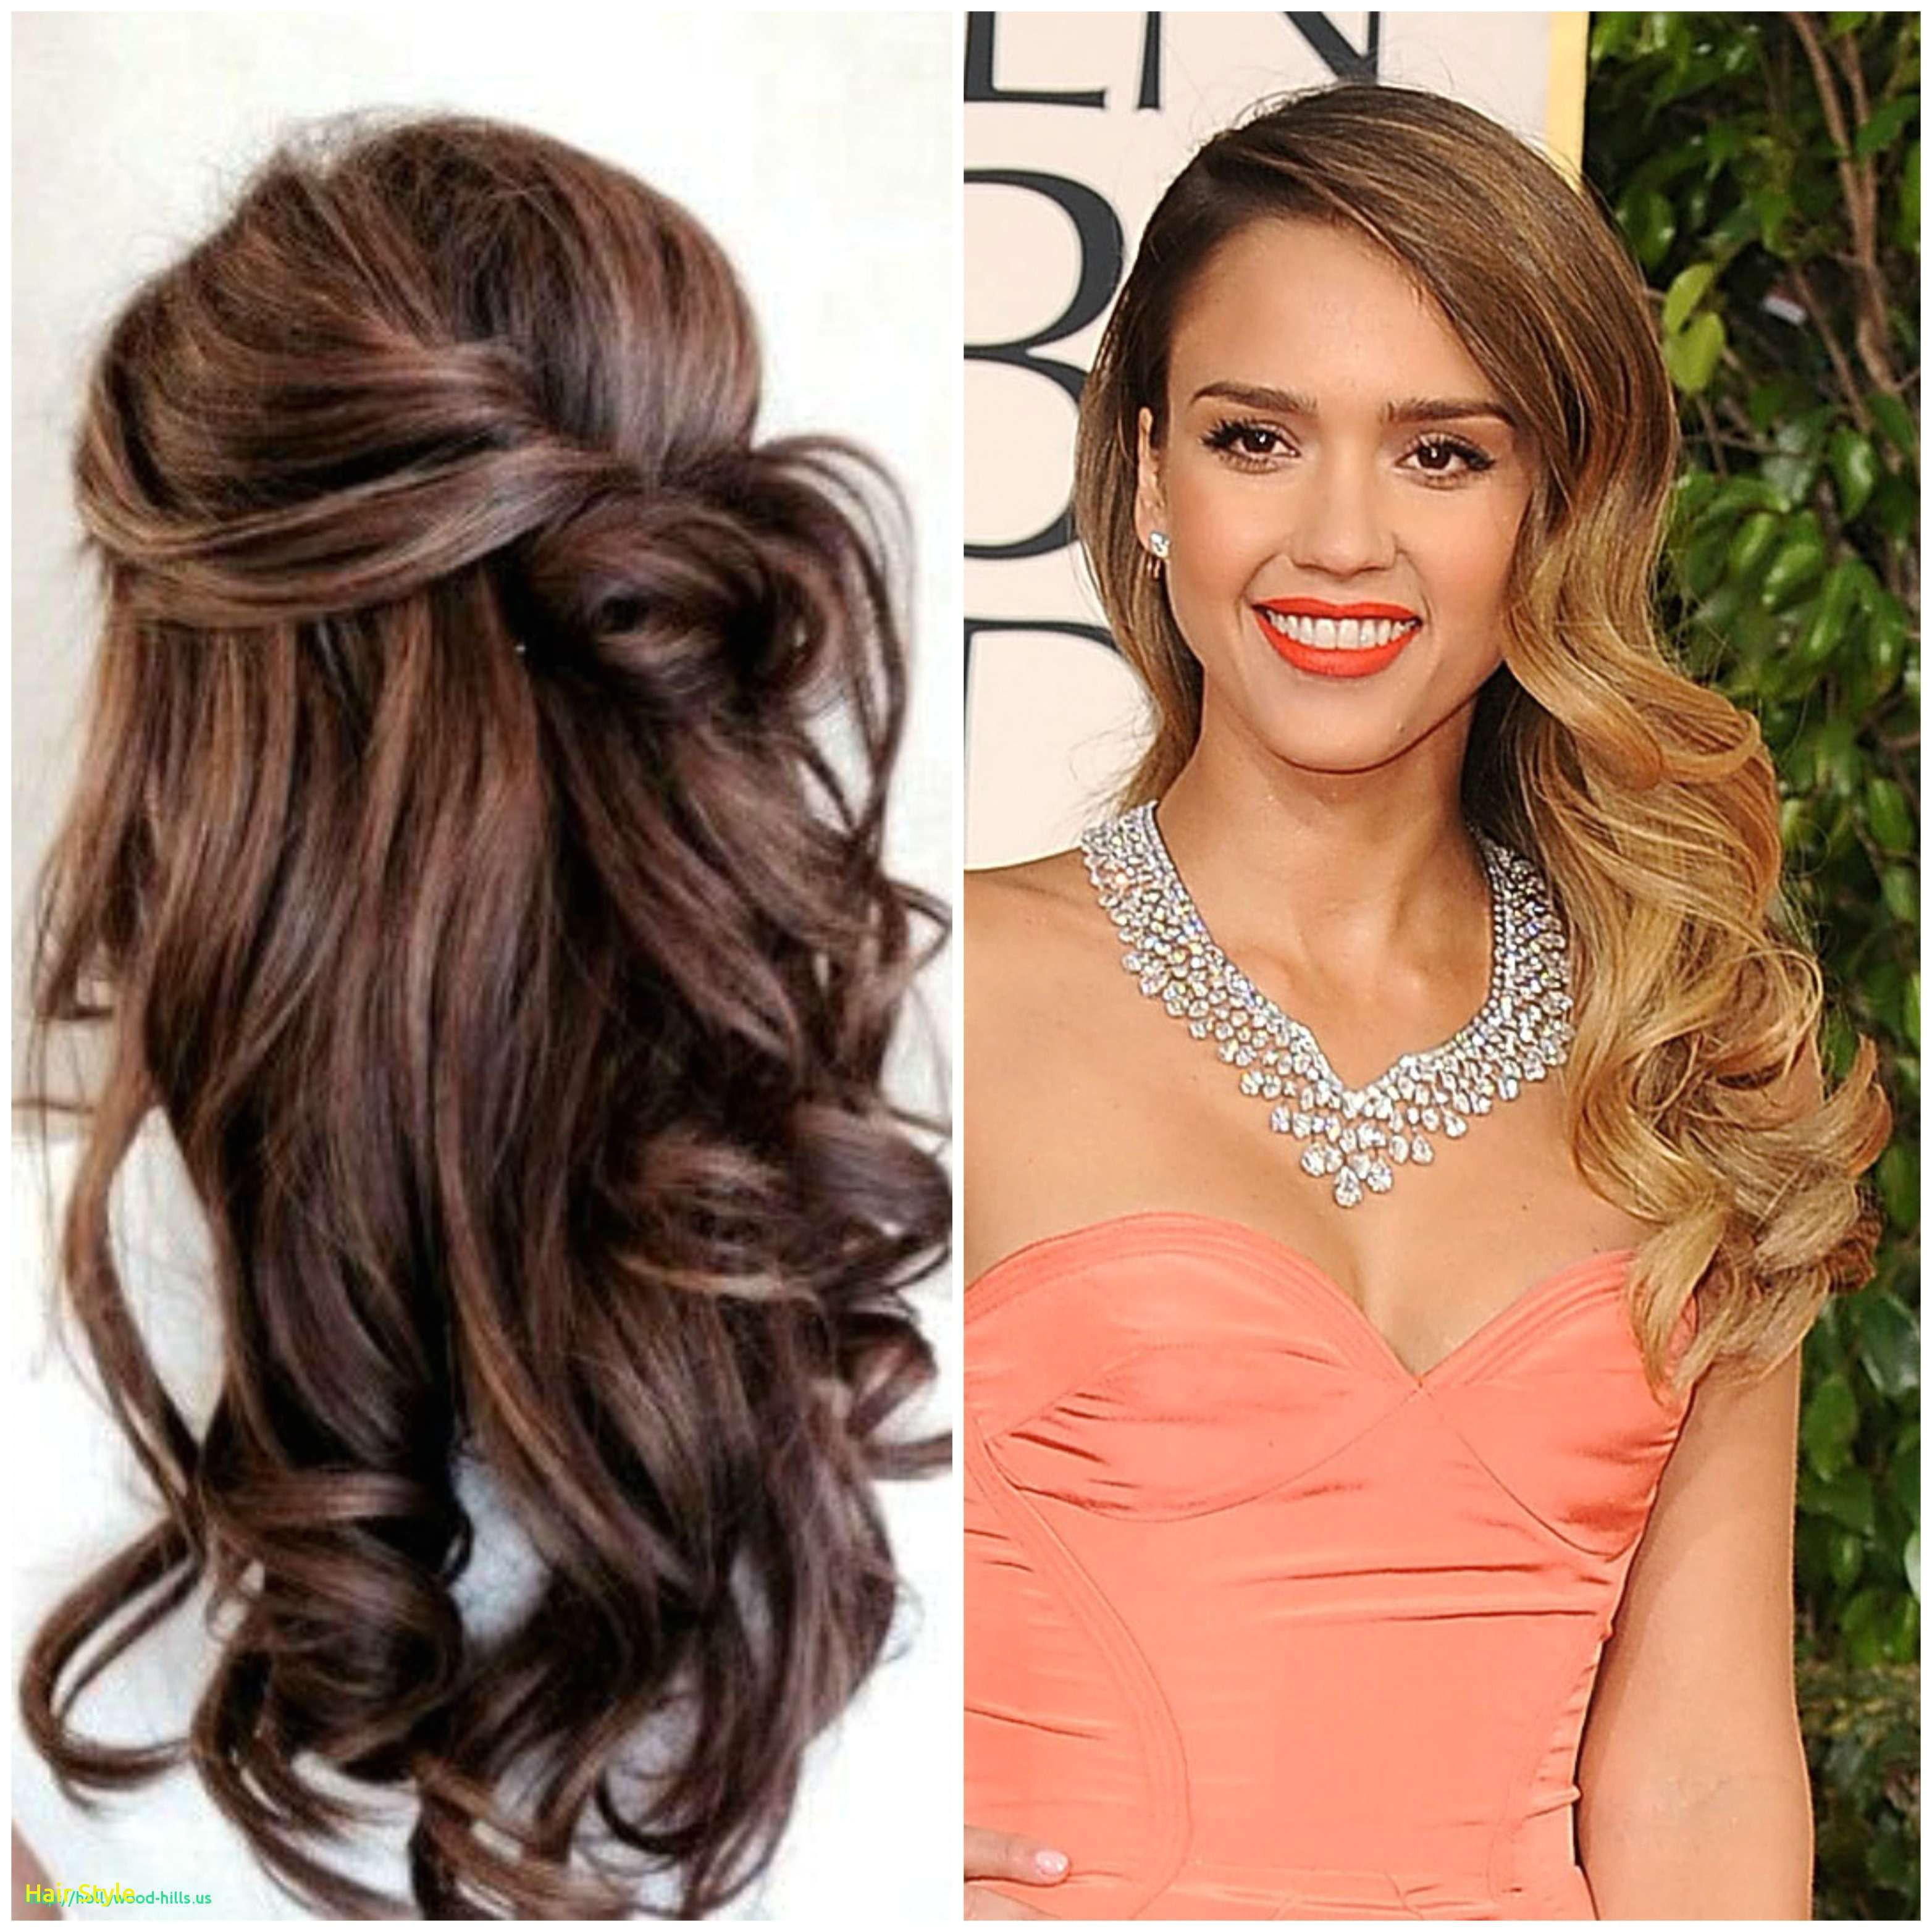 hairstyles for long hair 2015 luxury i pinimg 1200x 0d 60 8a furthermore human hair color Picture Beautiful Easy Hairstyles for Short